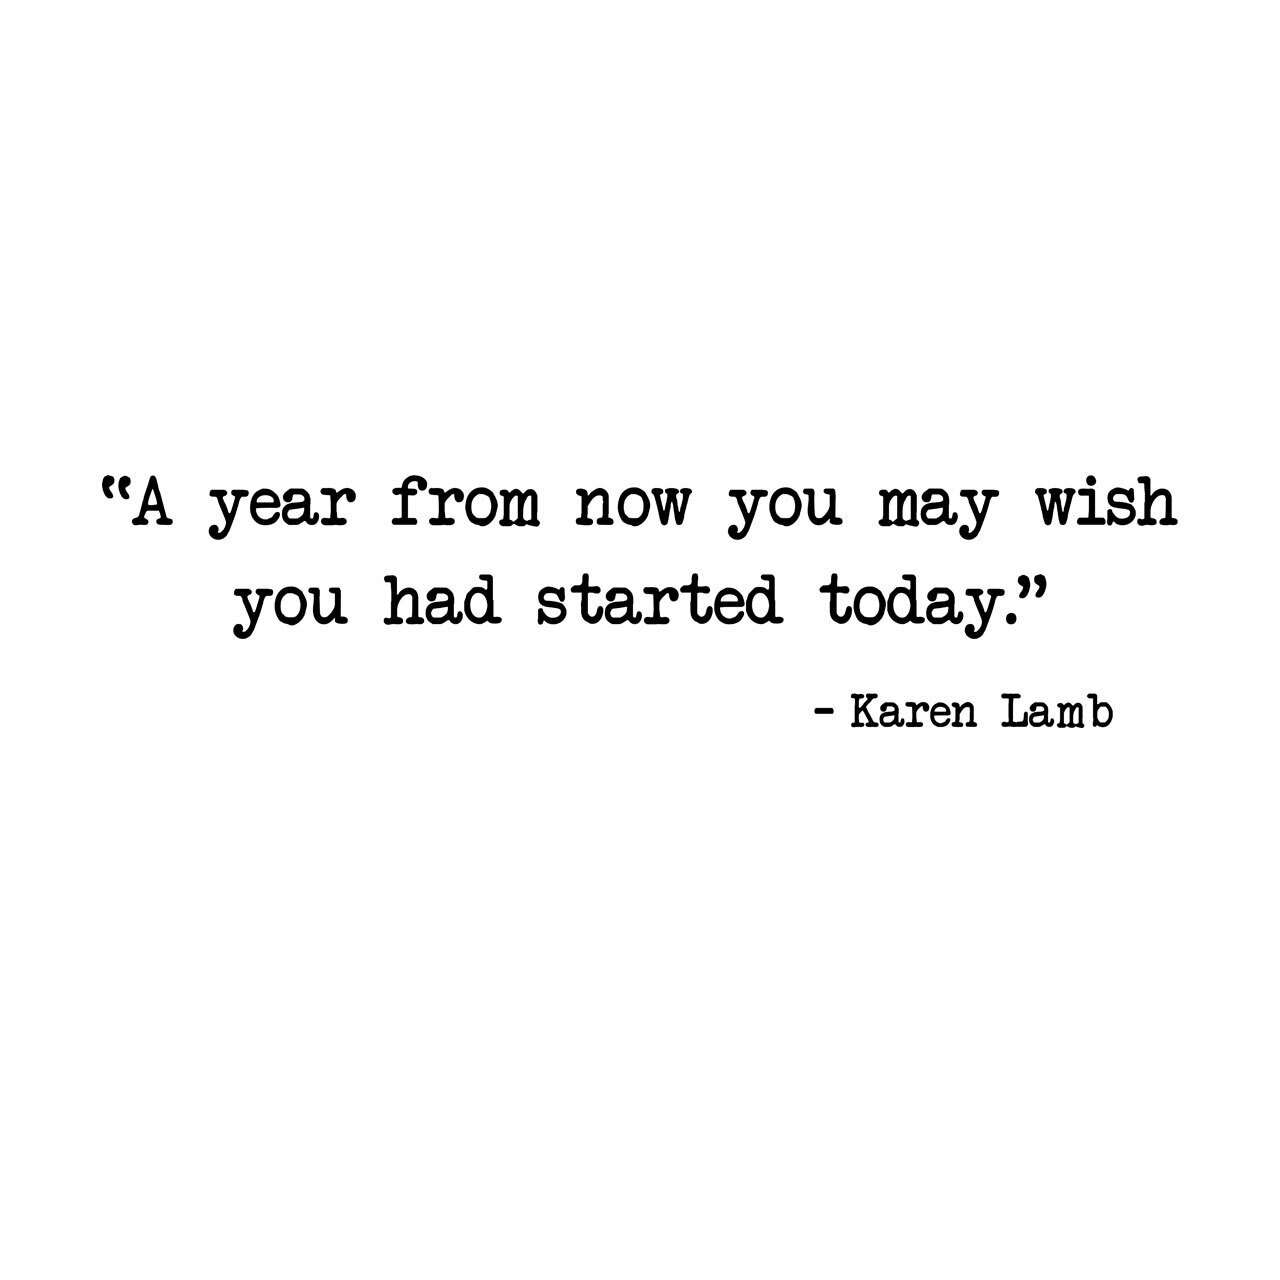 A year from now you may wish you had started today. - Karen Lamb written in black on a white background